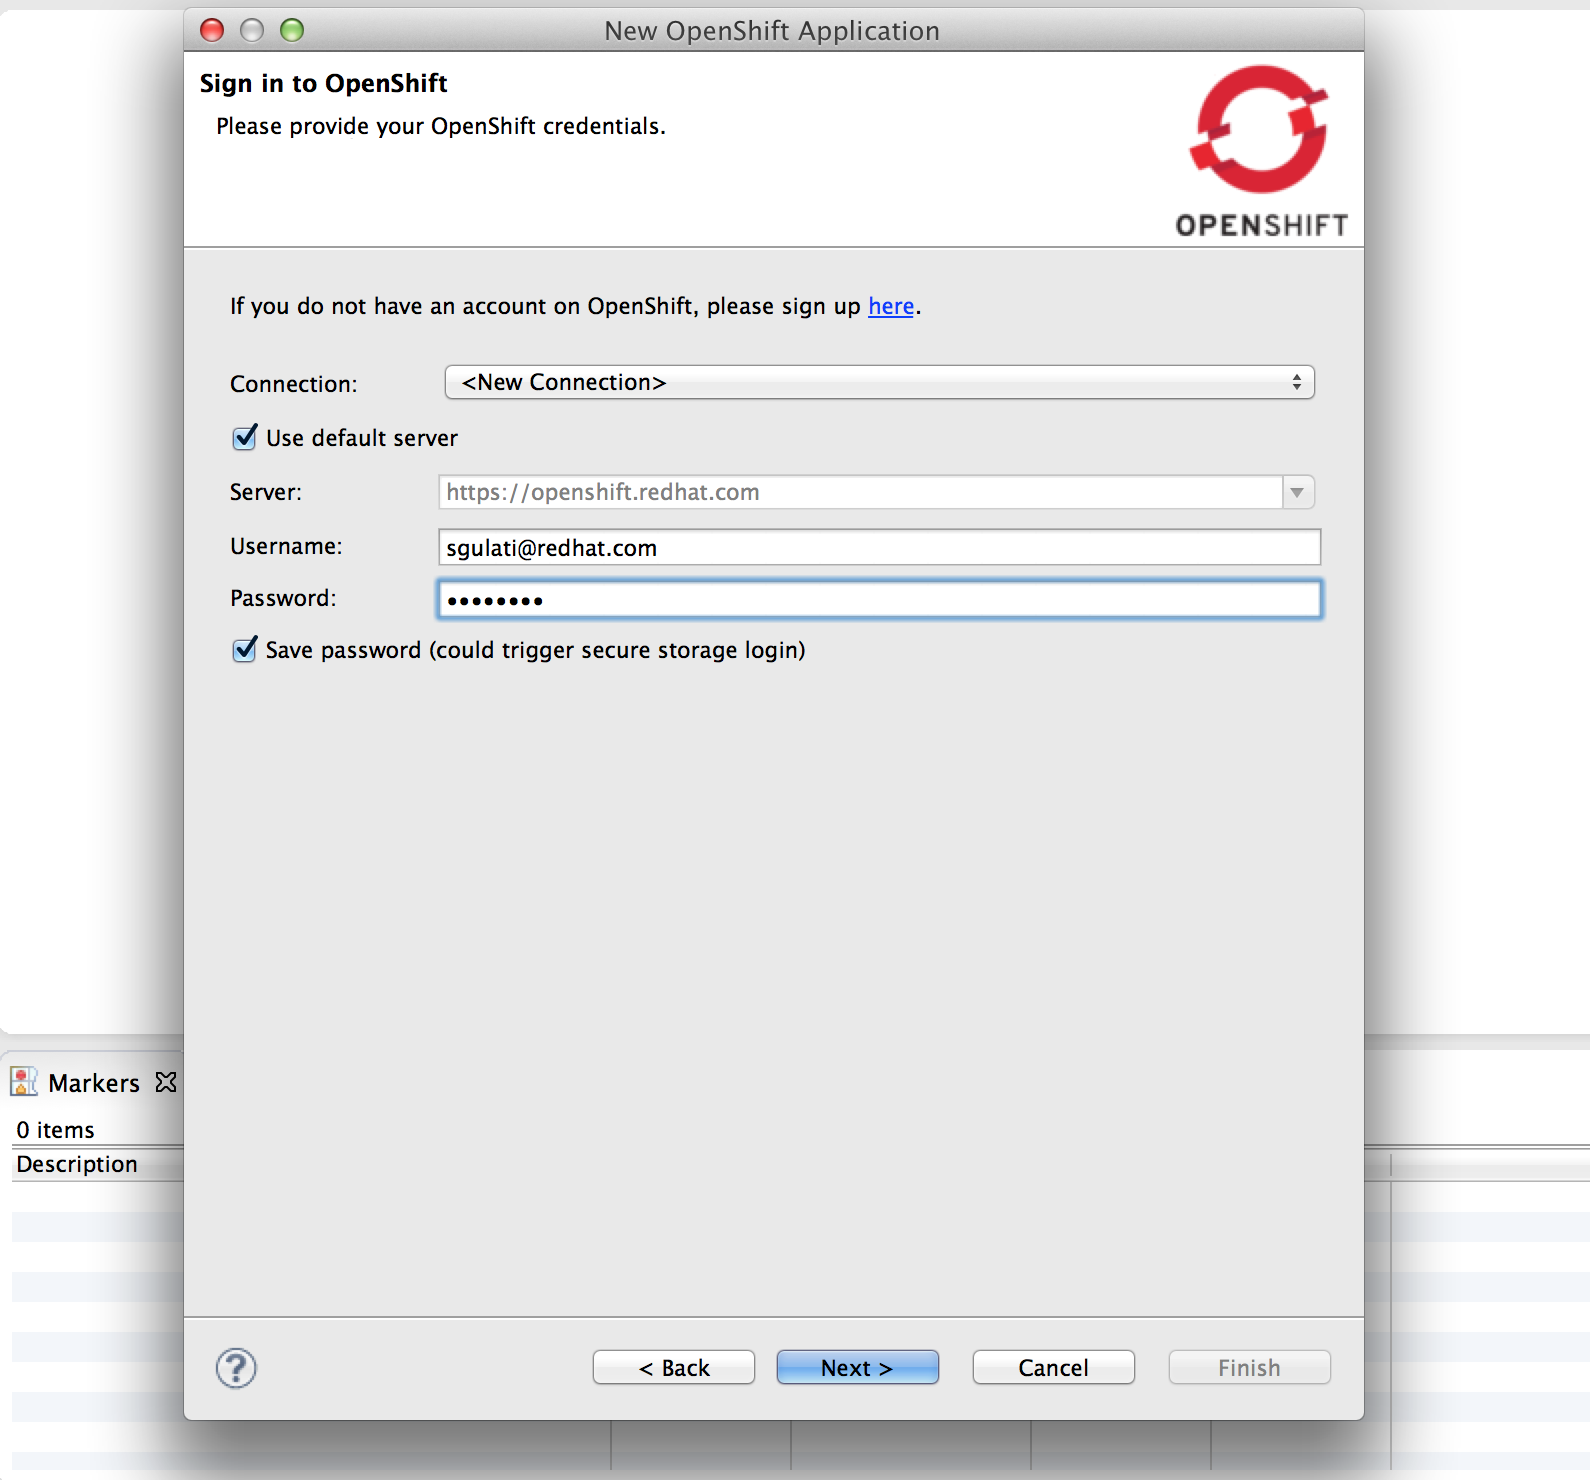 Sign in to OpenShift